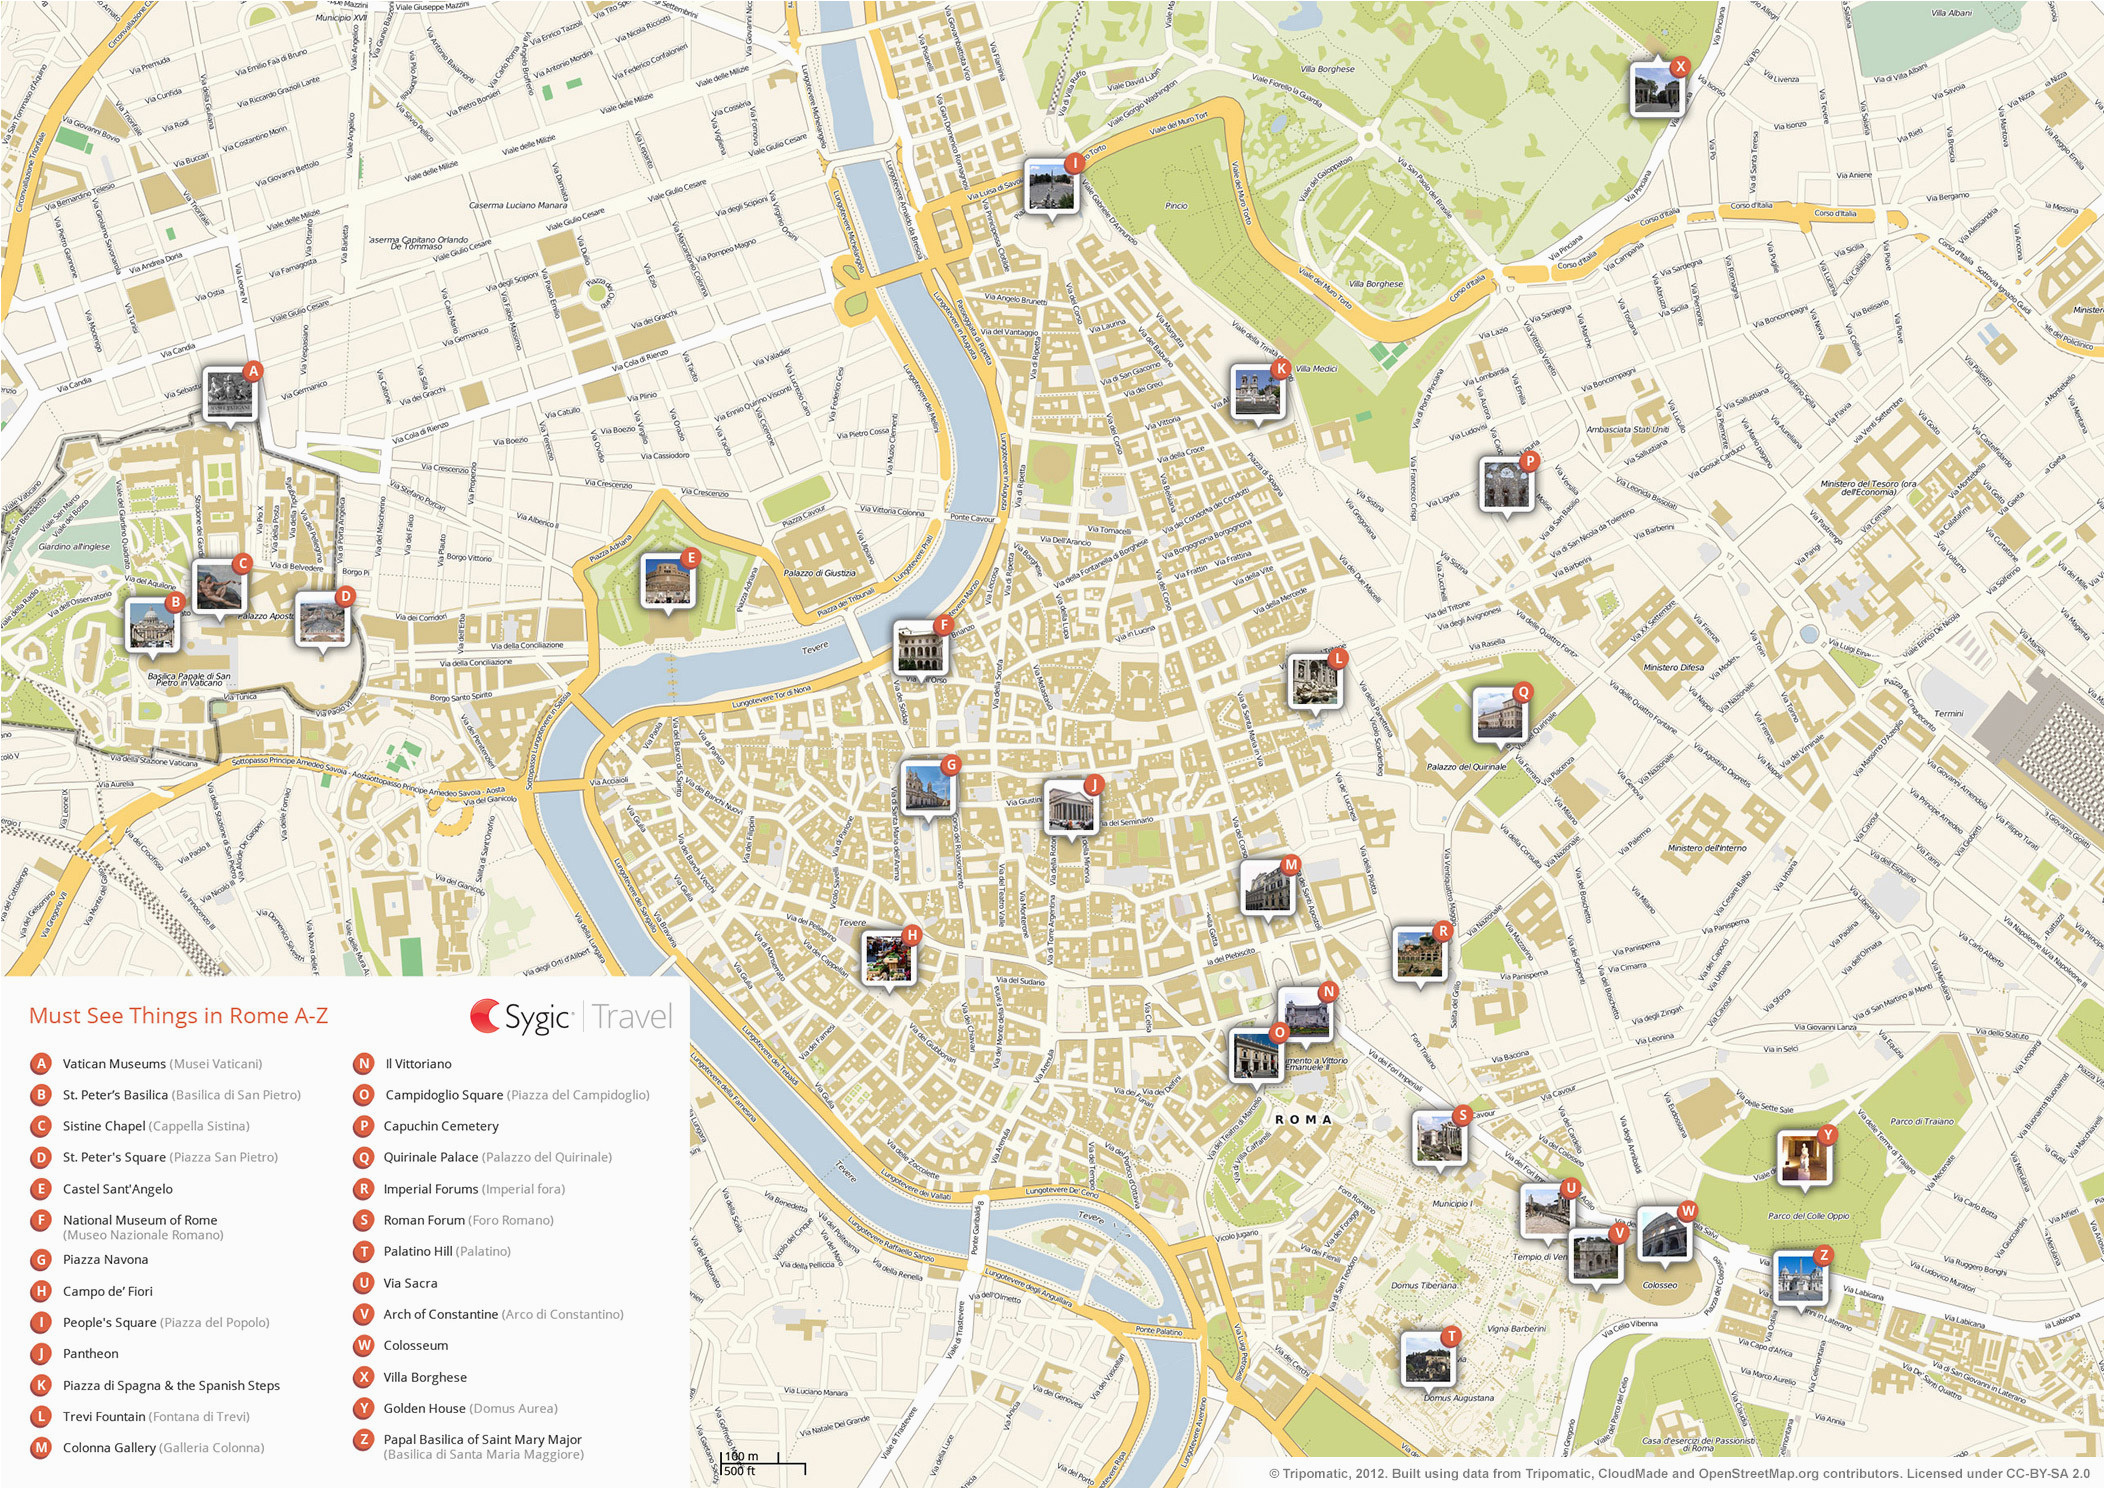 Map Of Rome Italy attractions Rome Printable tourist Map Sygic Travel